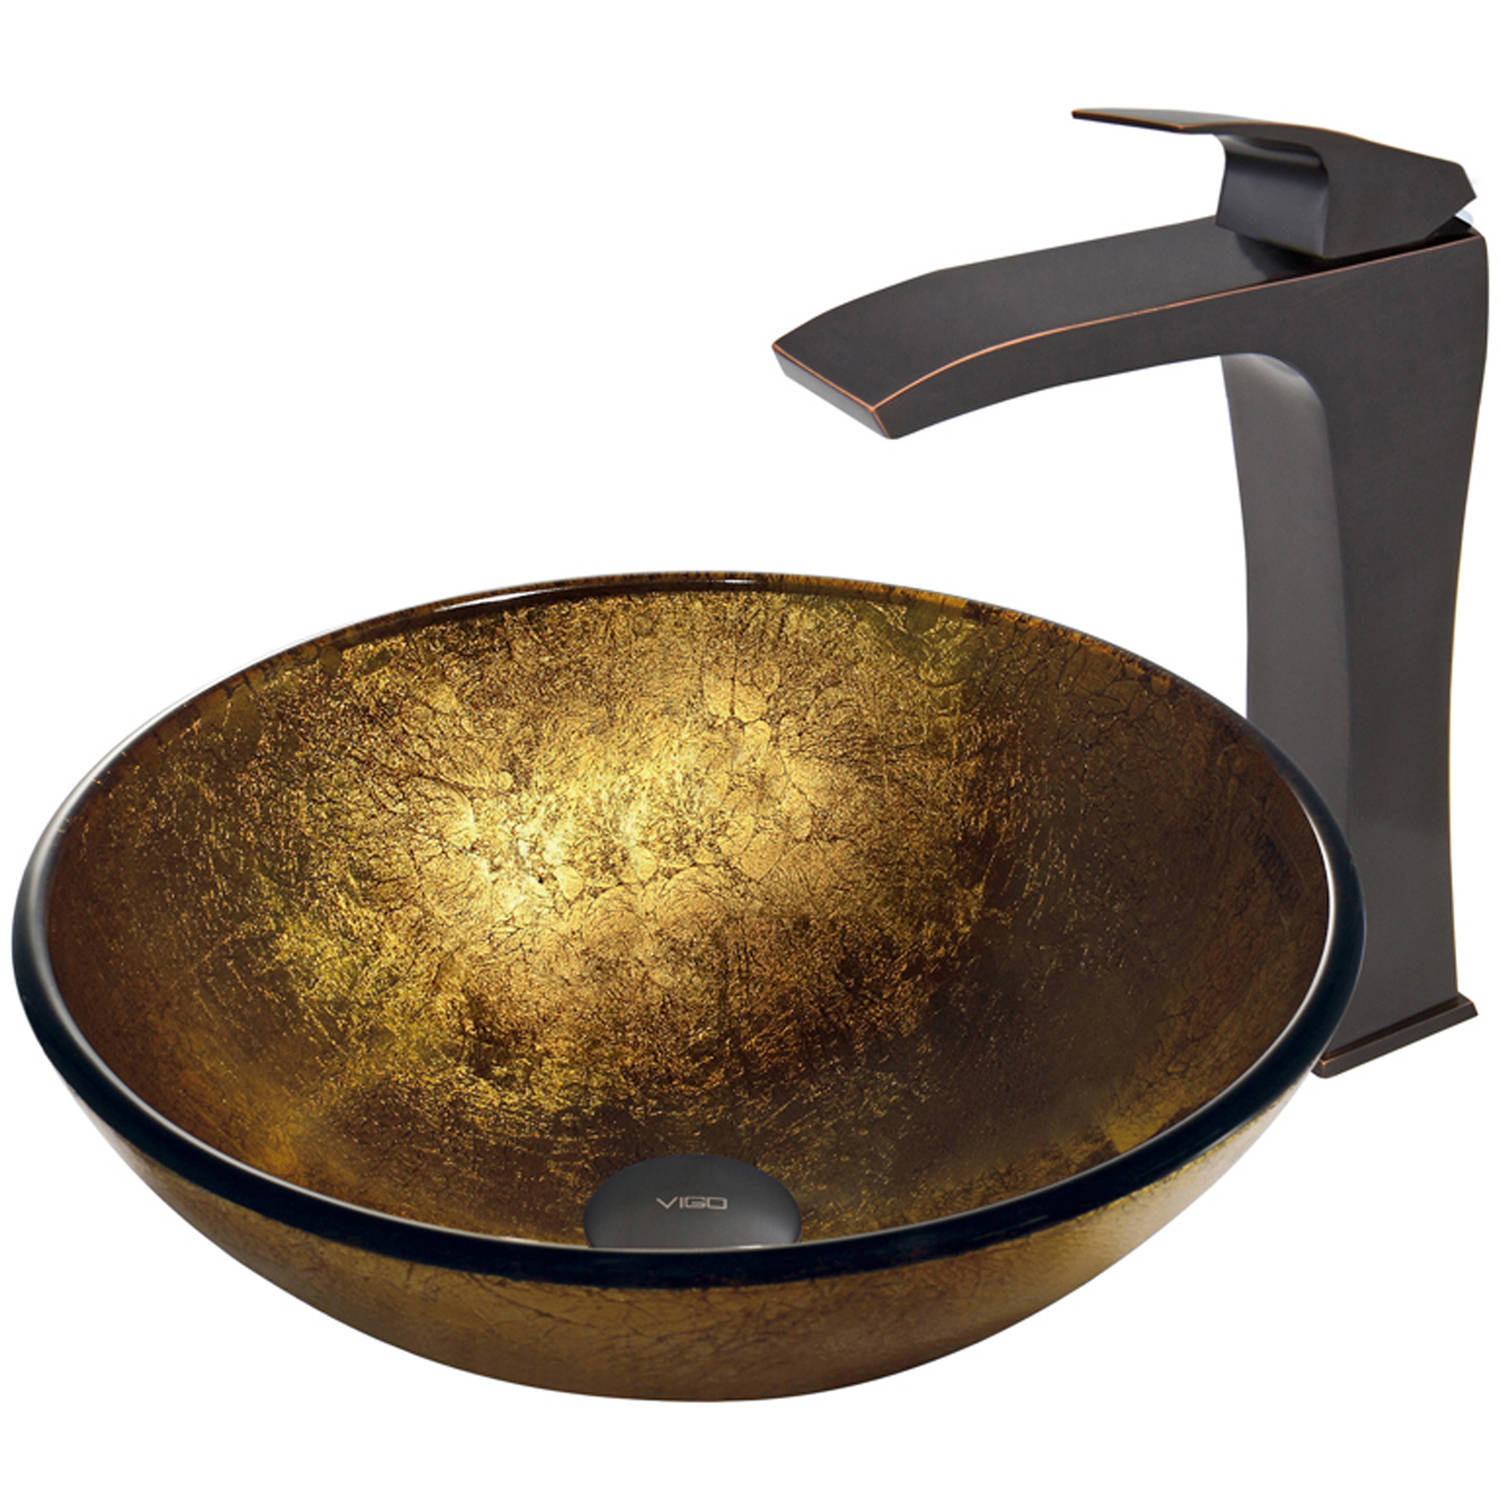 VIGO Liquid Gold Glass Vessel Sink and Blackstonian Faucet Set, Antique Rubbed Bronze Finish